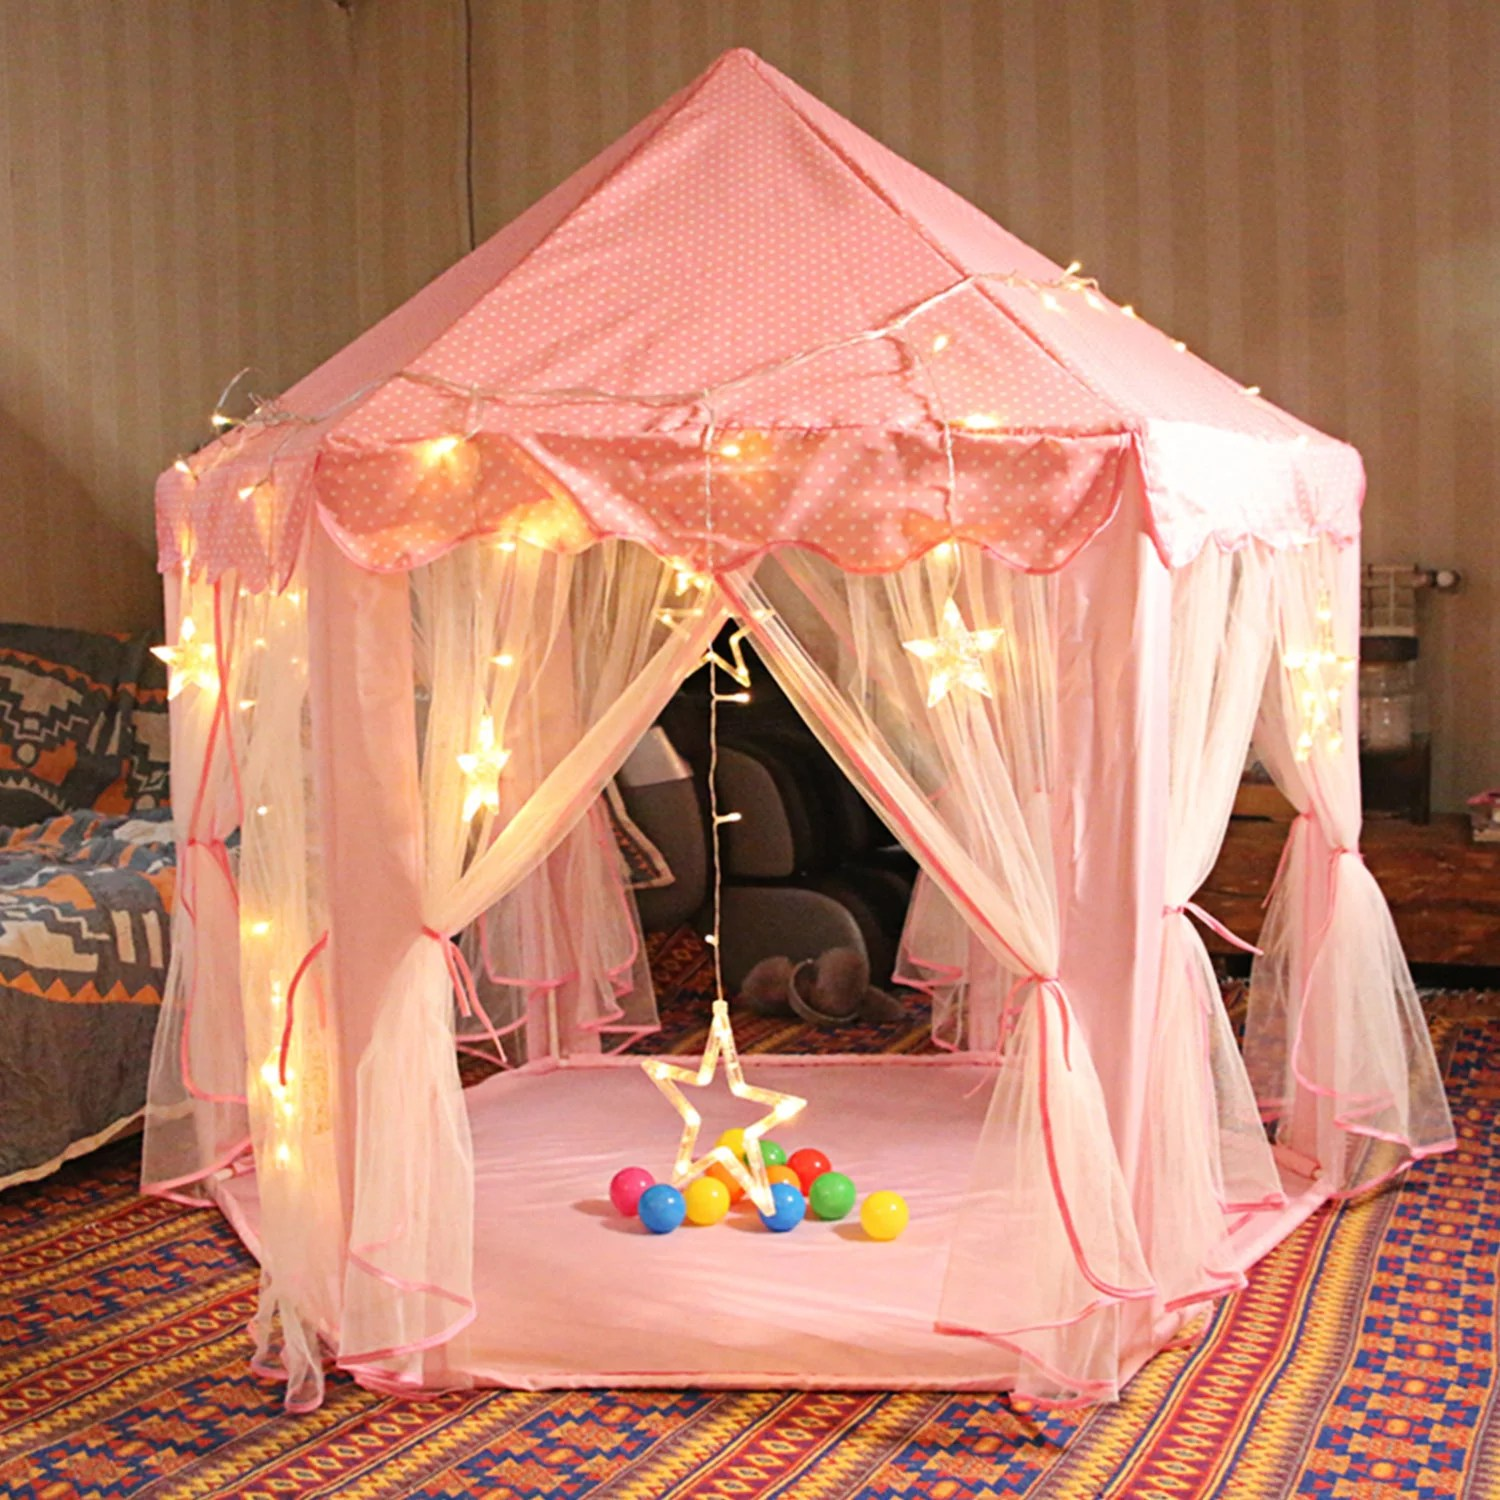 imountek indoor outdoor fairy princess castle tent 55 x53 tent play house tent gift with carry case